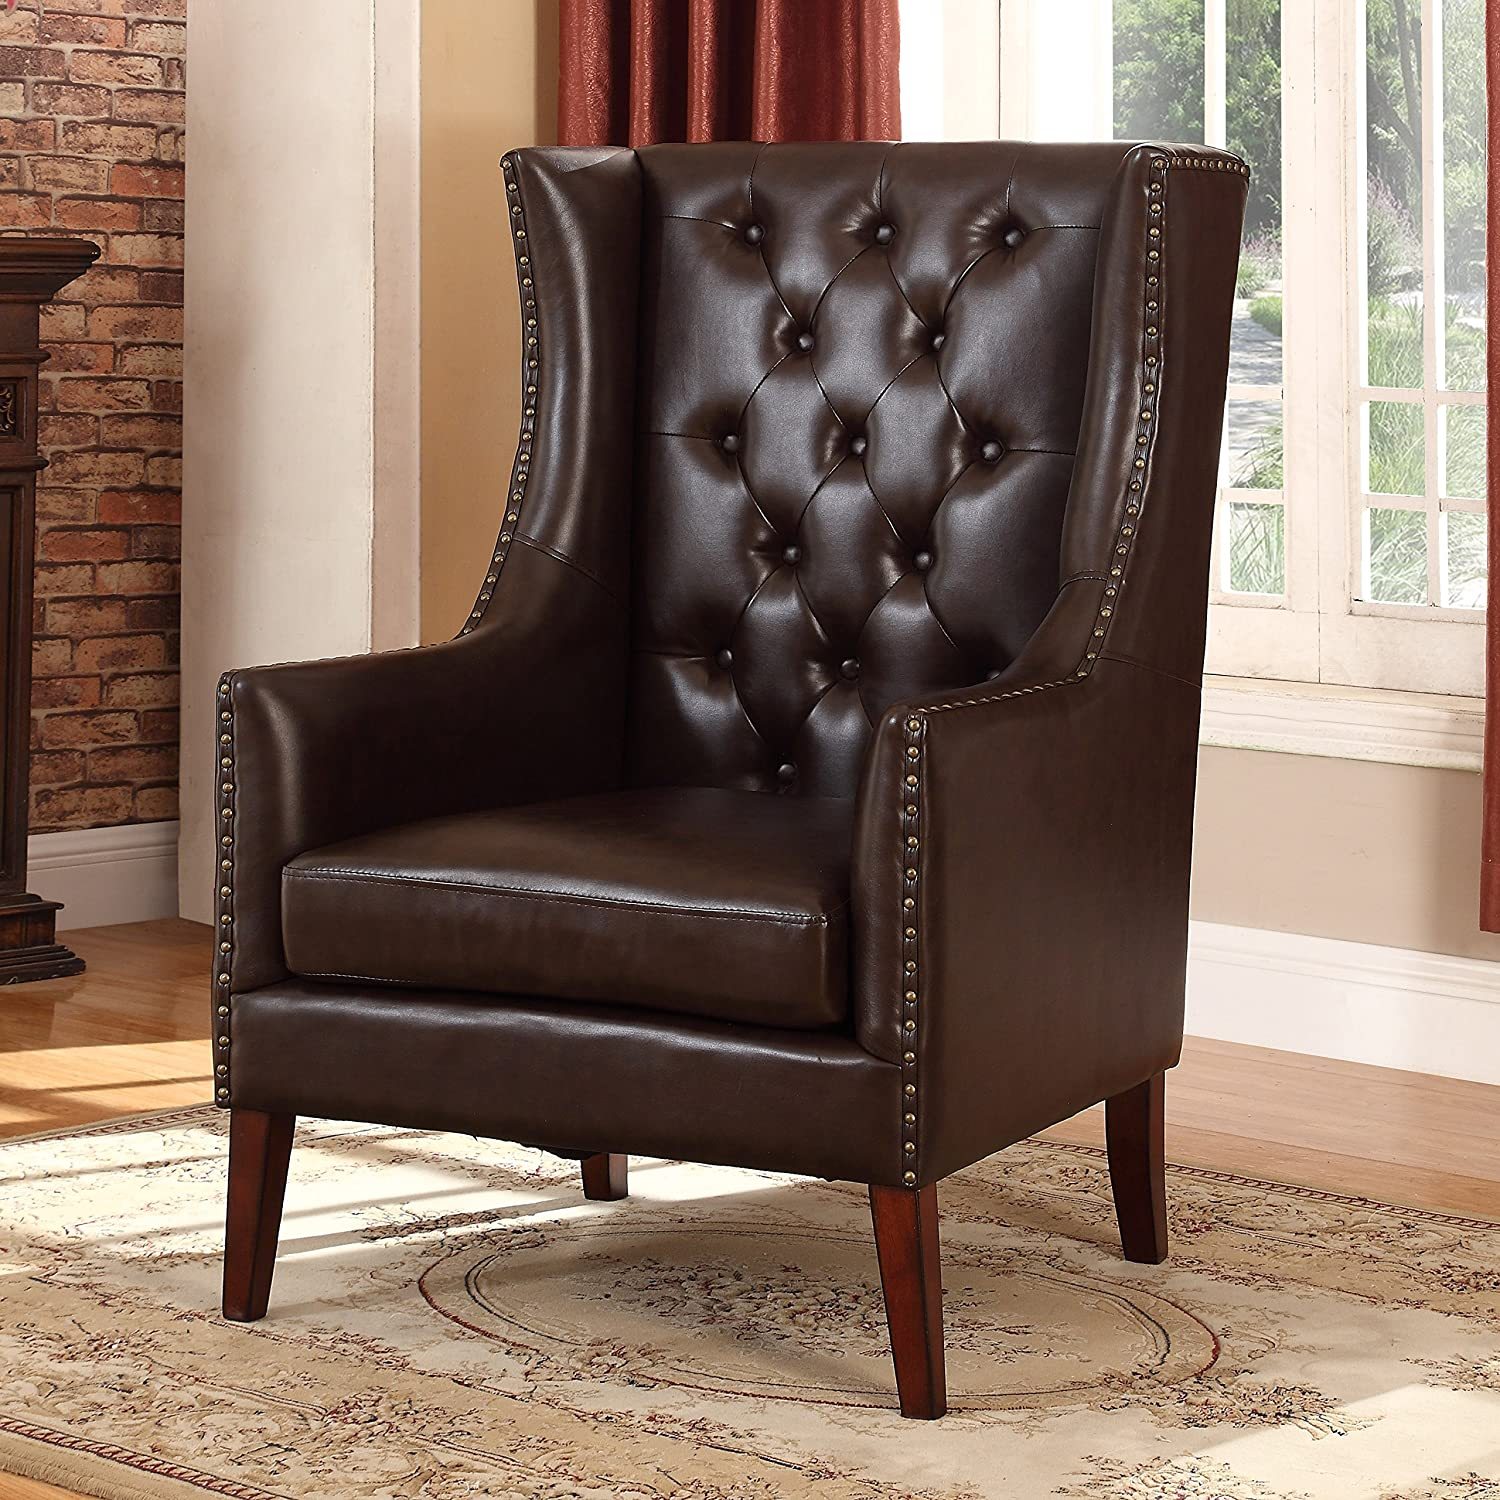 Best Master Furniture Jesse Executive Style Accent Chair, Medium, Espresso